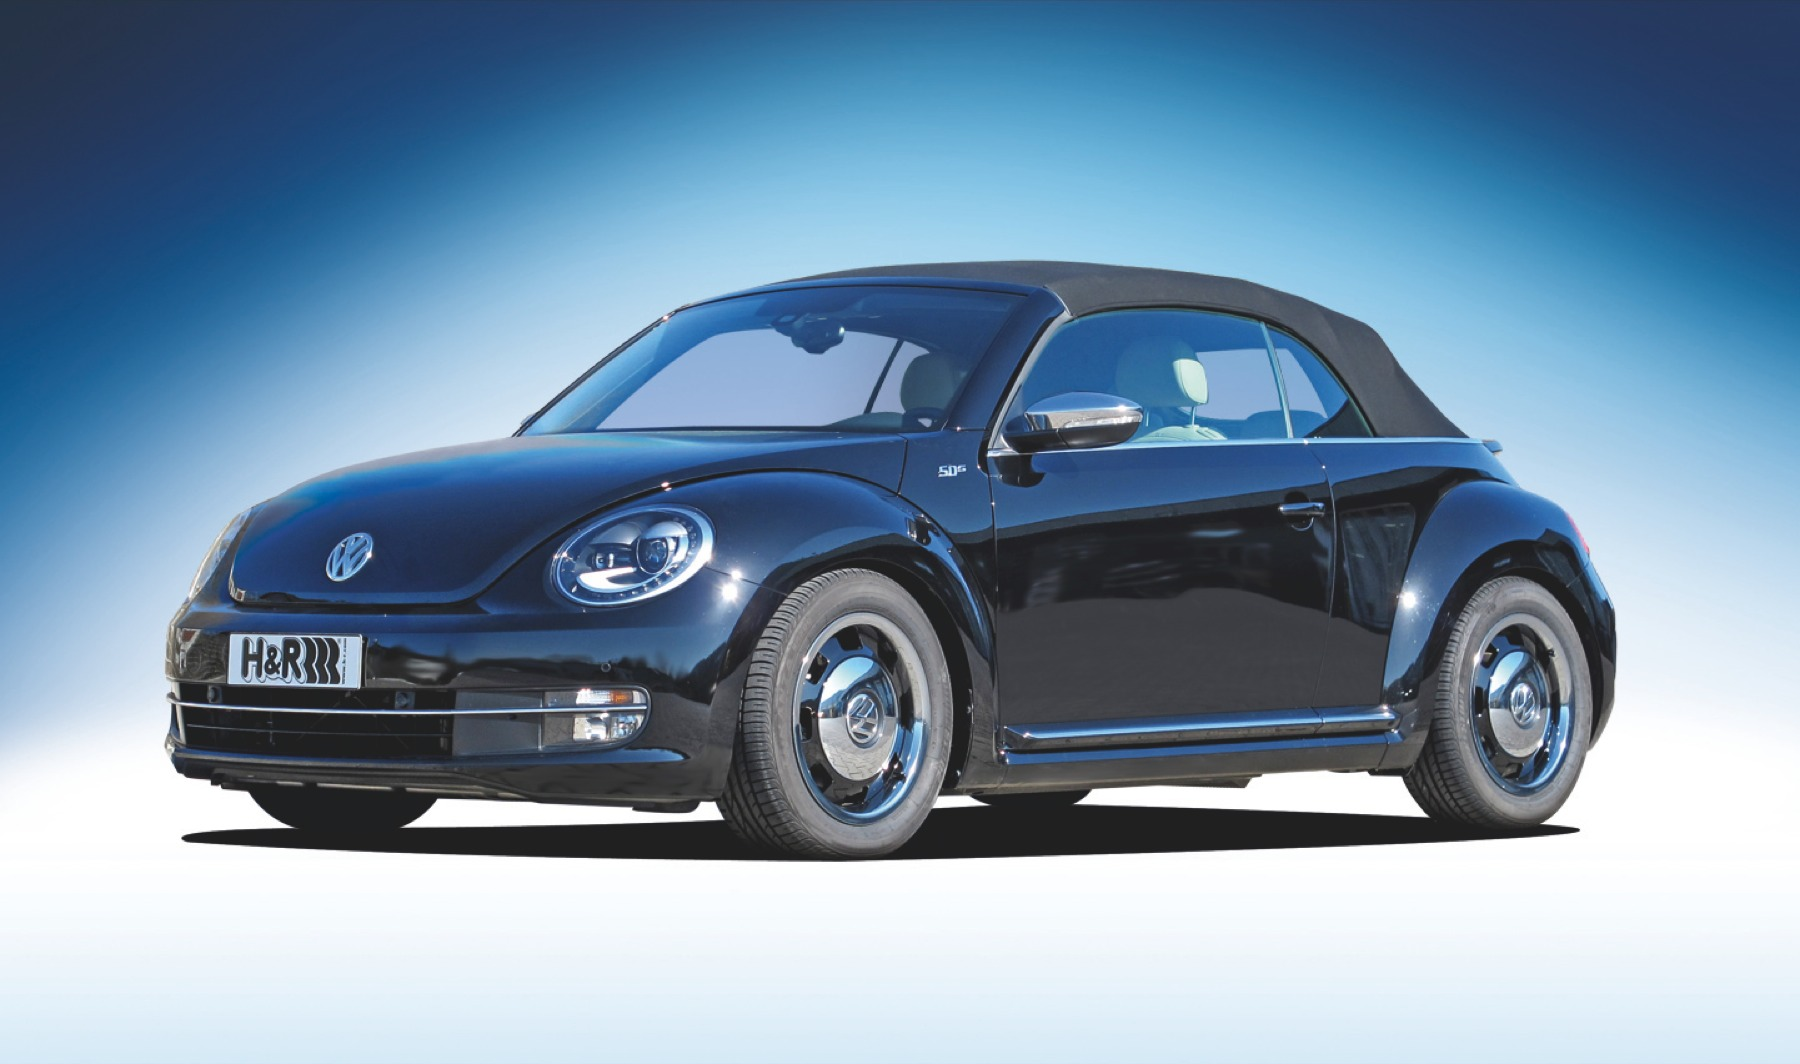 h r sportfedern f r das neue vw beetle cabriolet znpp. Black Bedroom Furniture Sets. Home Design Ideas